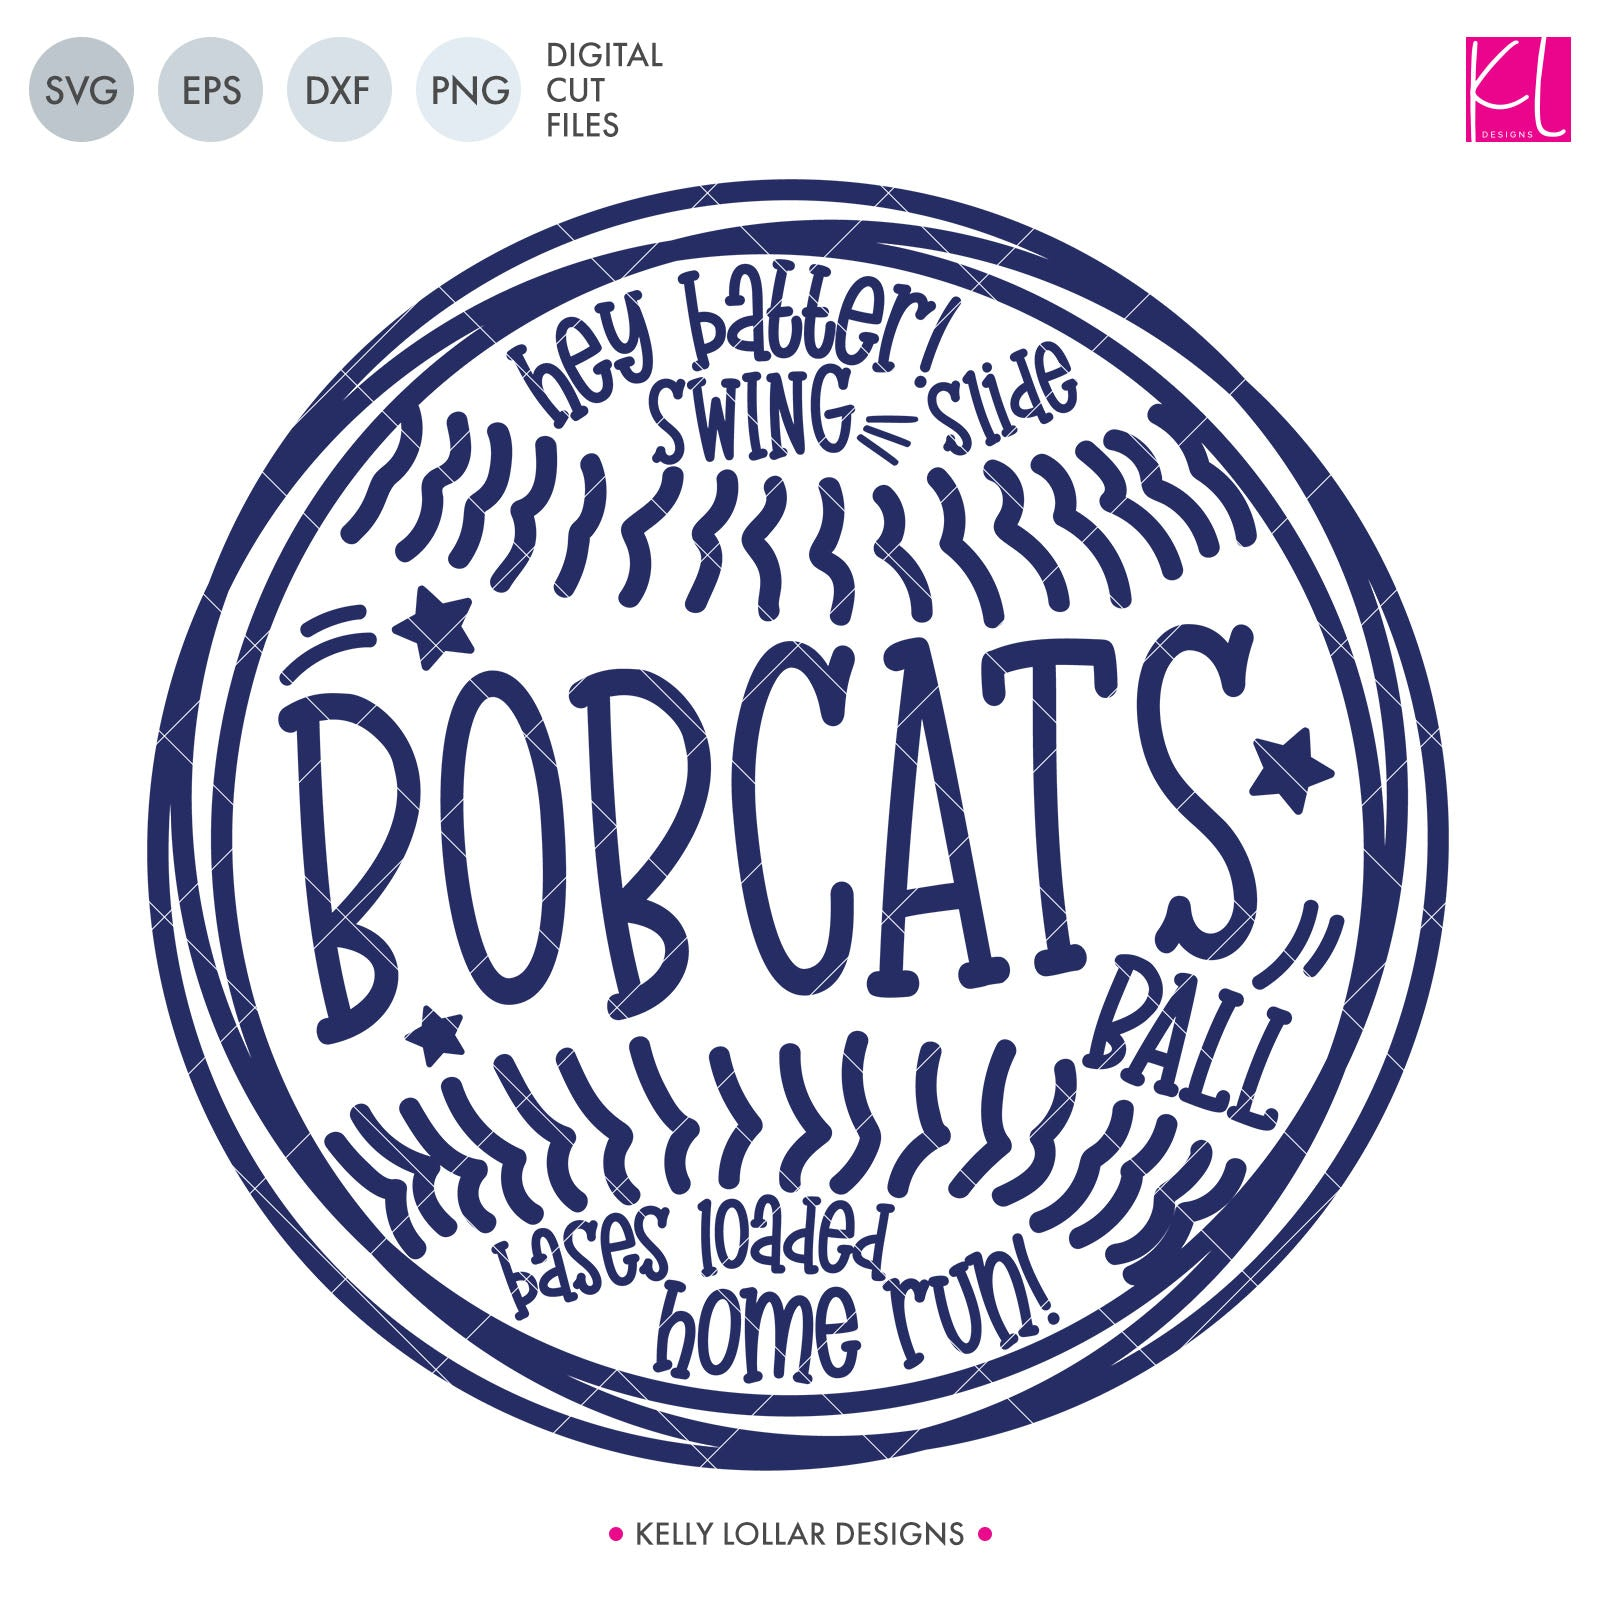 Bobcats Baseball & Softball Bundle | SVG DXF EPS PNG Cut Files It's baseball and softball season, so Bobcat crafter know what that means ... new spirit shirts! This fifteen-piece bundle includes a little something for everyone - from girly and cute to